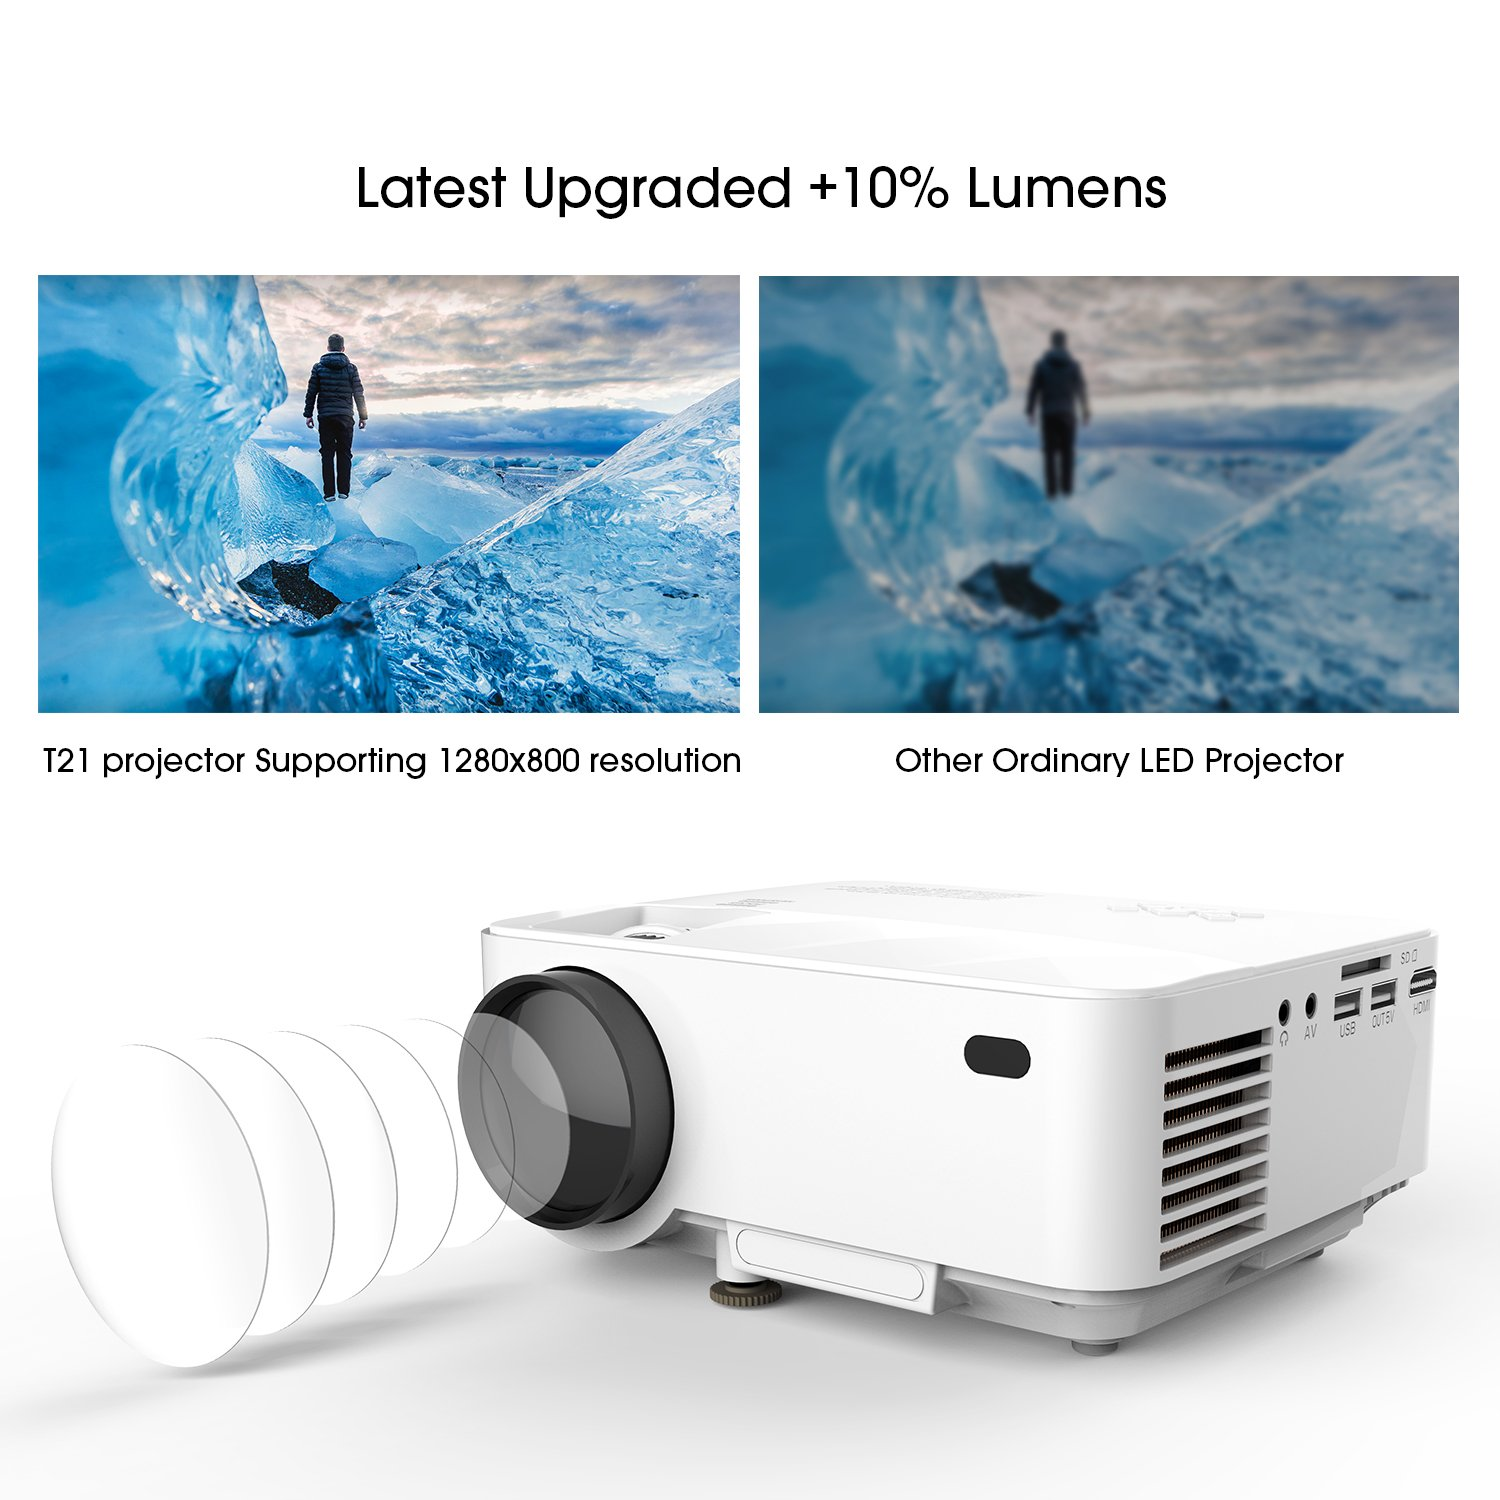 DBPOWER T21 Upgraded LED Projector,1800 Lumens Multimedia Home Theater Video Projector Supporting 1080P, HDMI, USB, SD Card, VGA, AV for Home Cinema, TV, Laptops, Games, Smartphones & iPad by DBPOWER (Image #3)